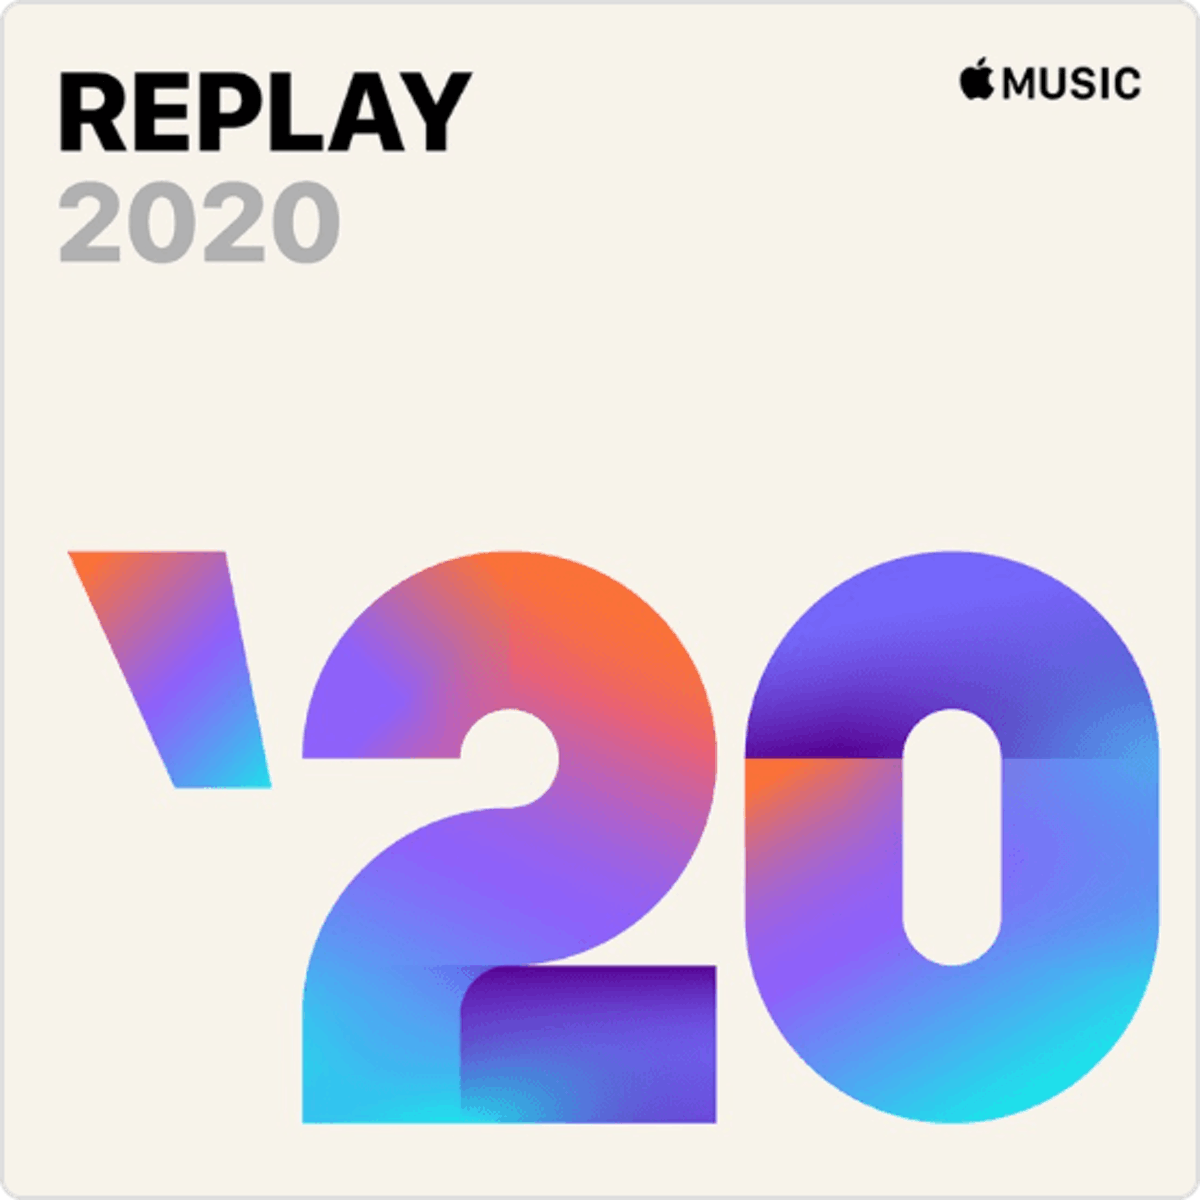 Here's how you can get your Apple Music Replay for 2020.